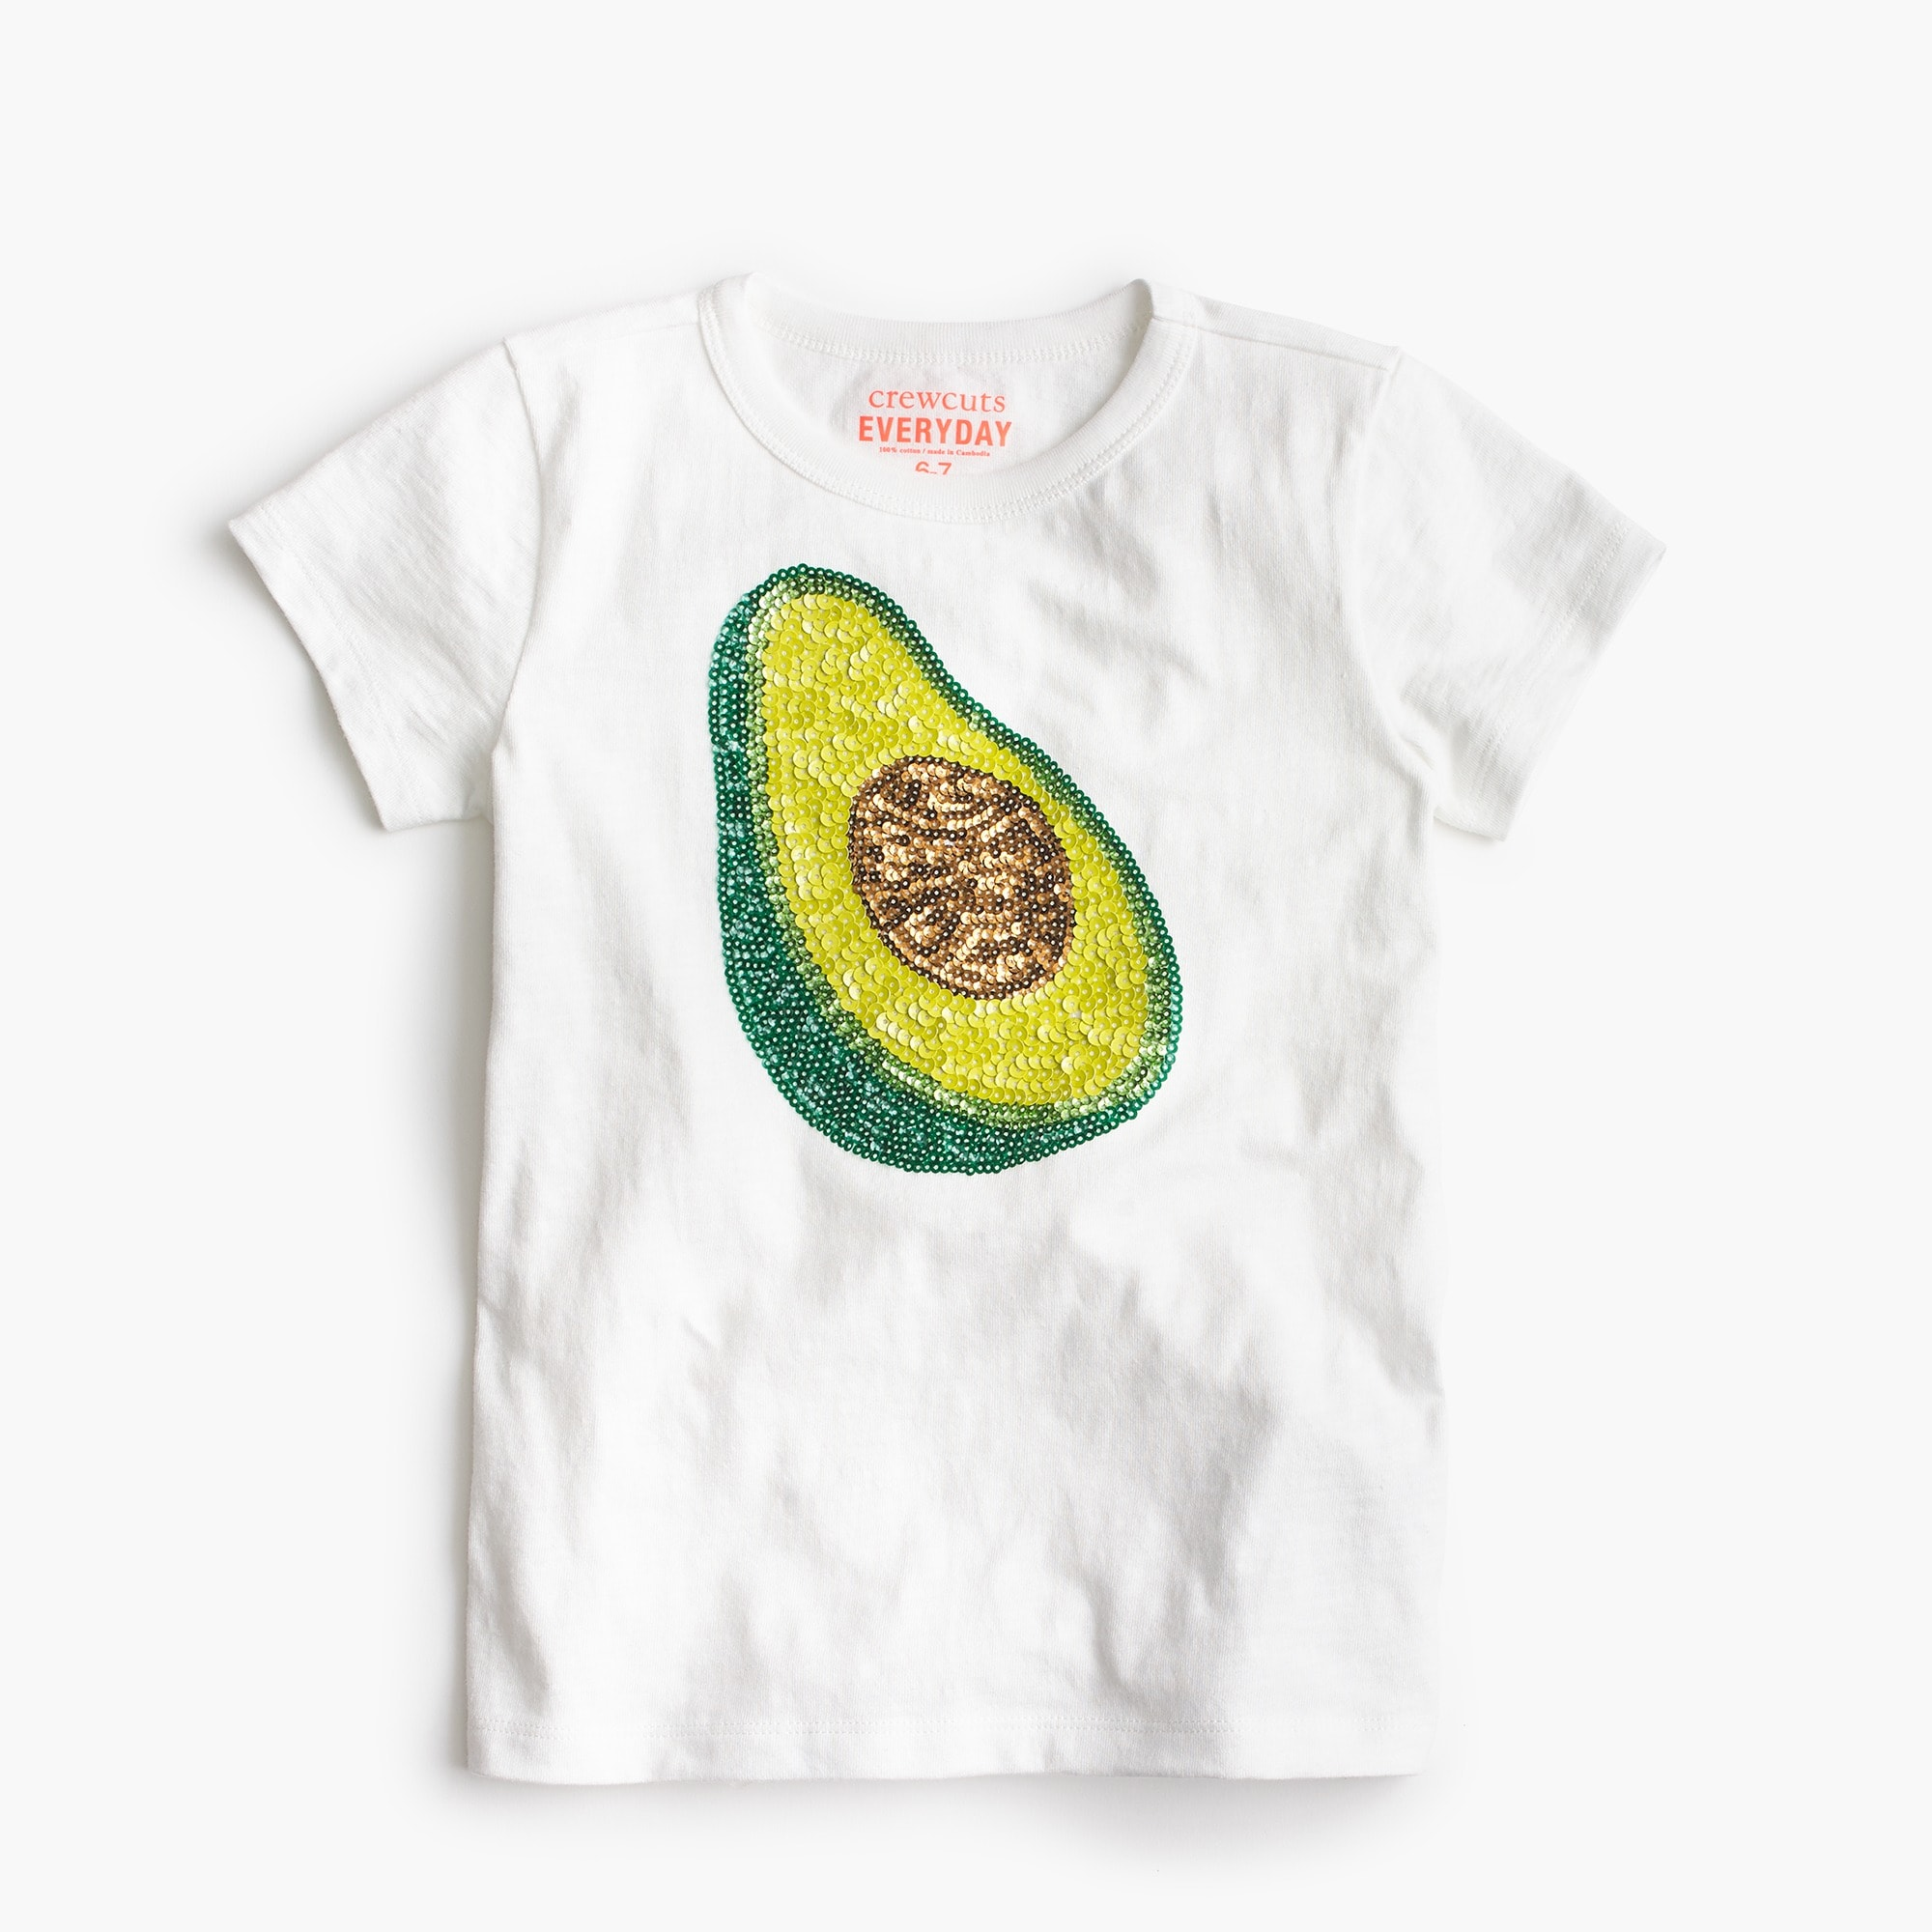 Girls' avocado T-shirt girl new arrivals c